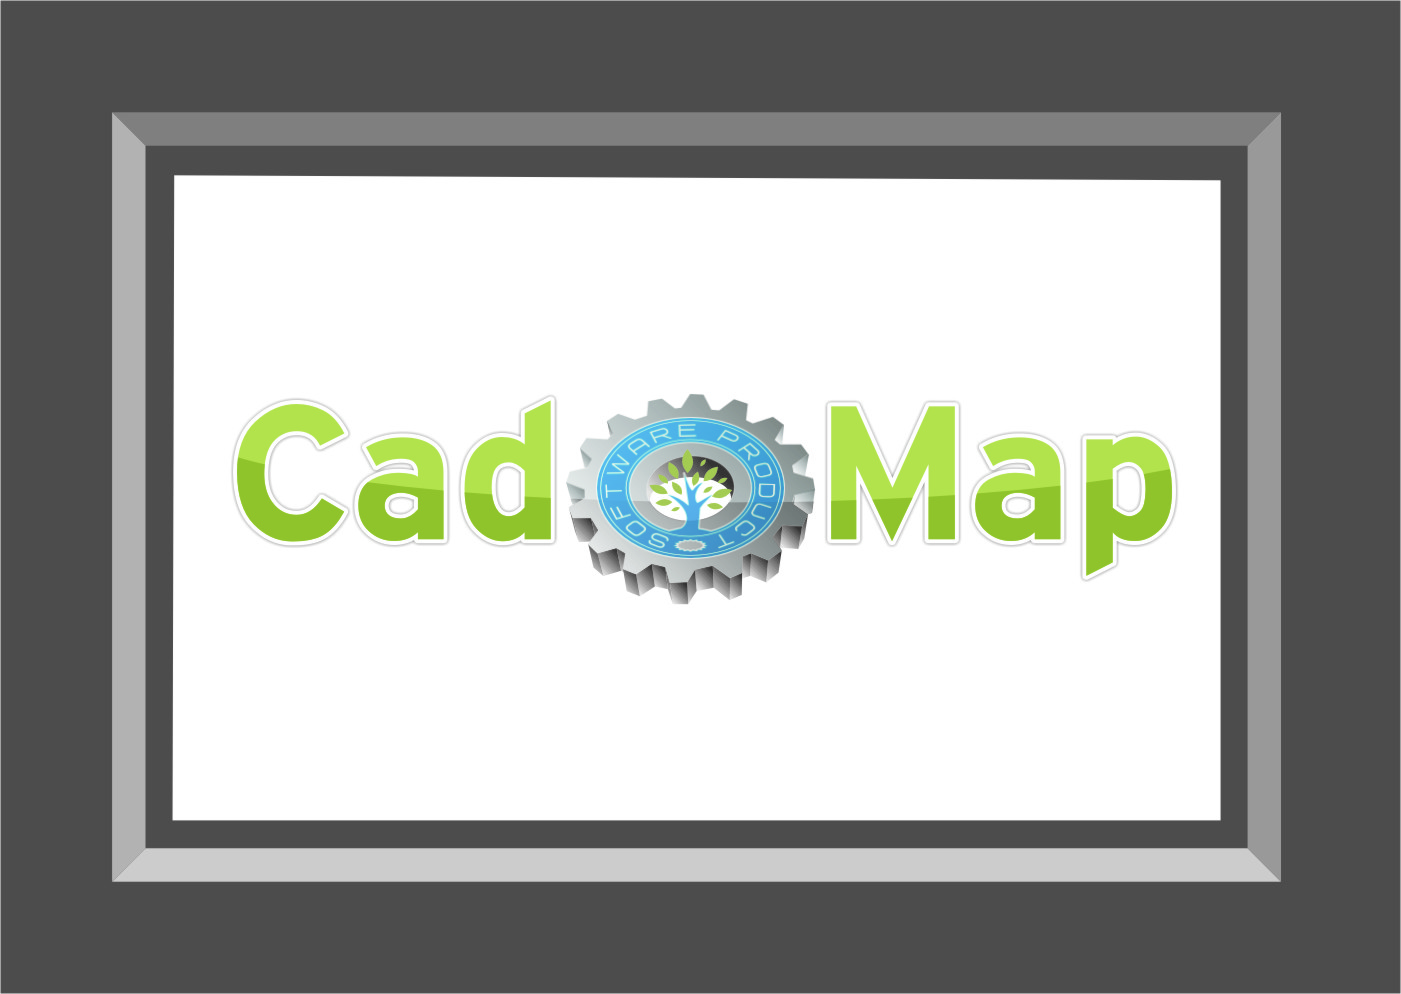 Logo Design by Ngepet_art - Entry No. 127 in the Logo Design Contest Captivating Logo Design for CadOMap software product.